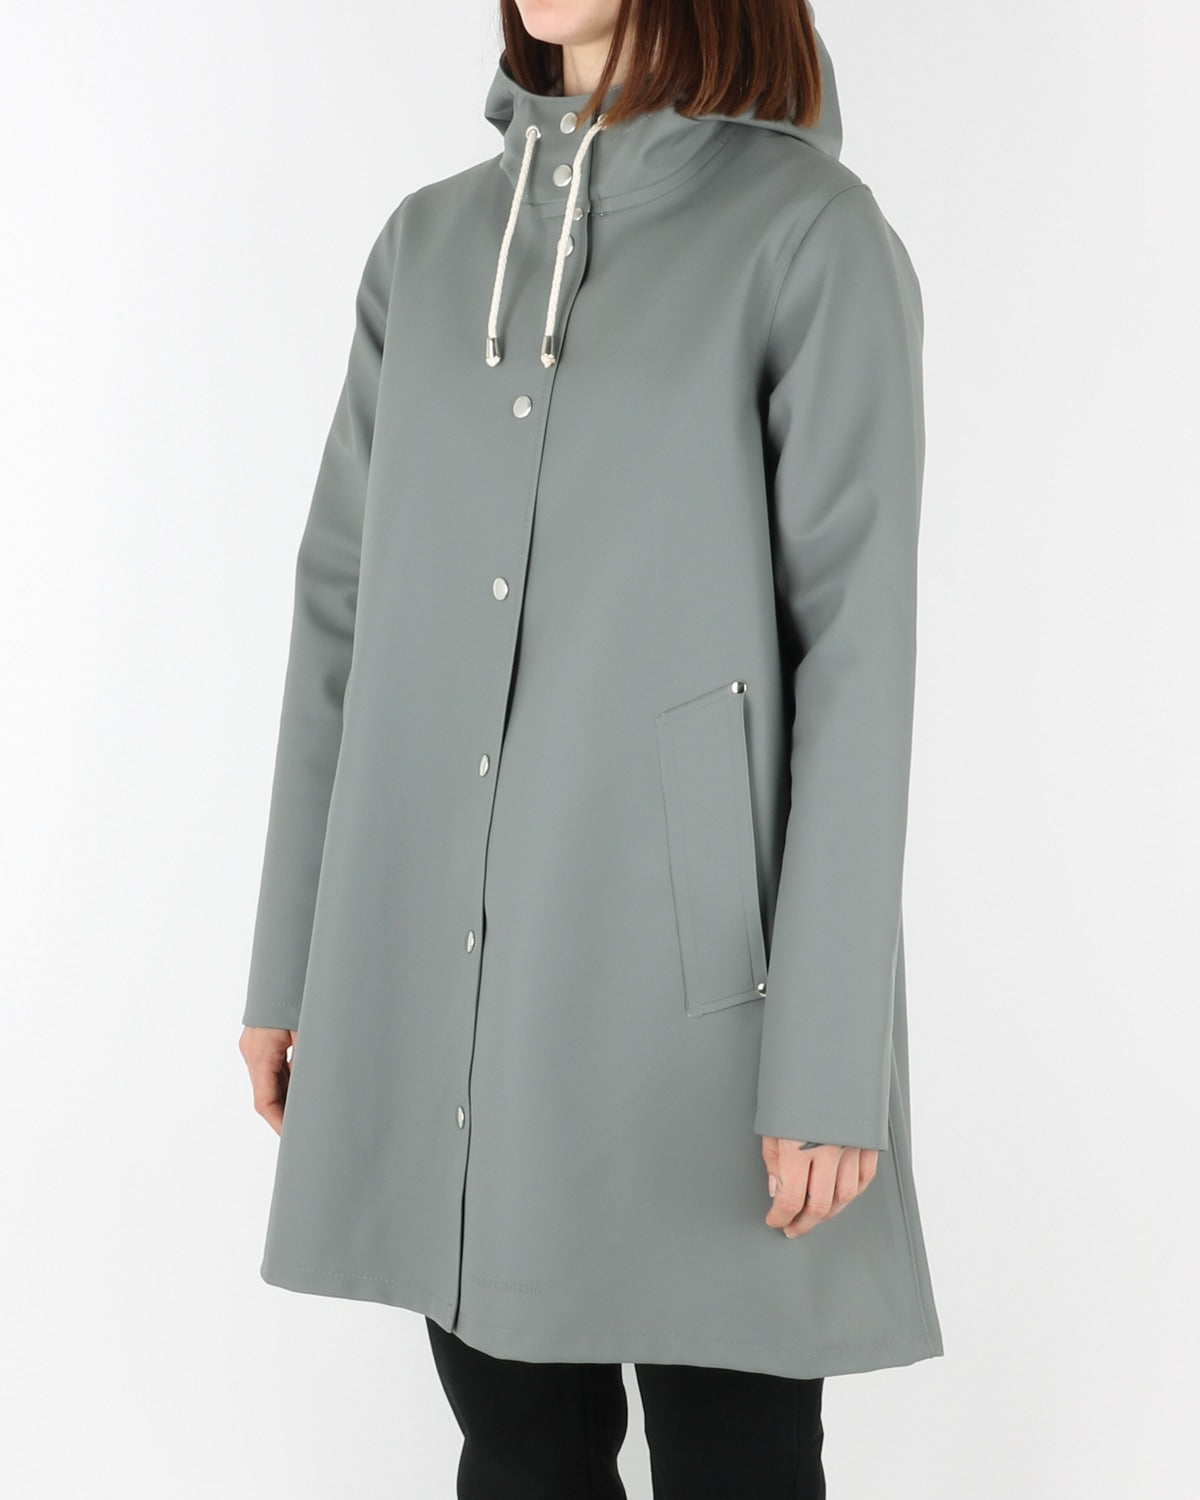 stutterheim_mosebacke_raincoat_grey_view_2_3